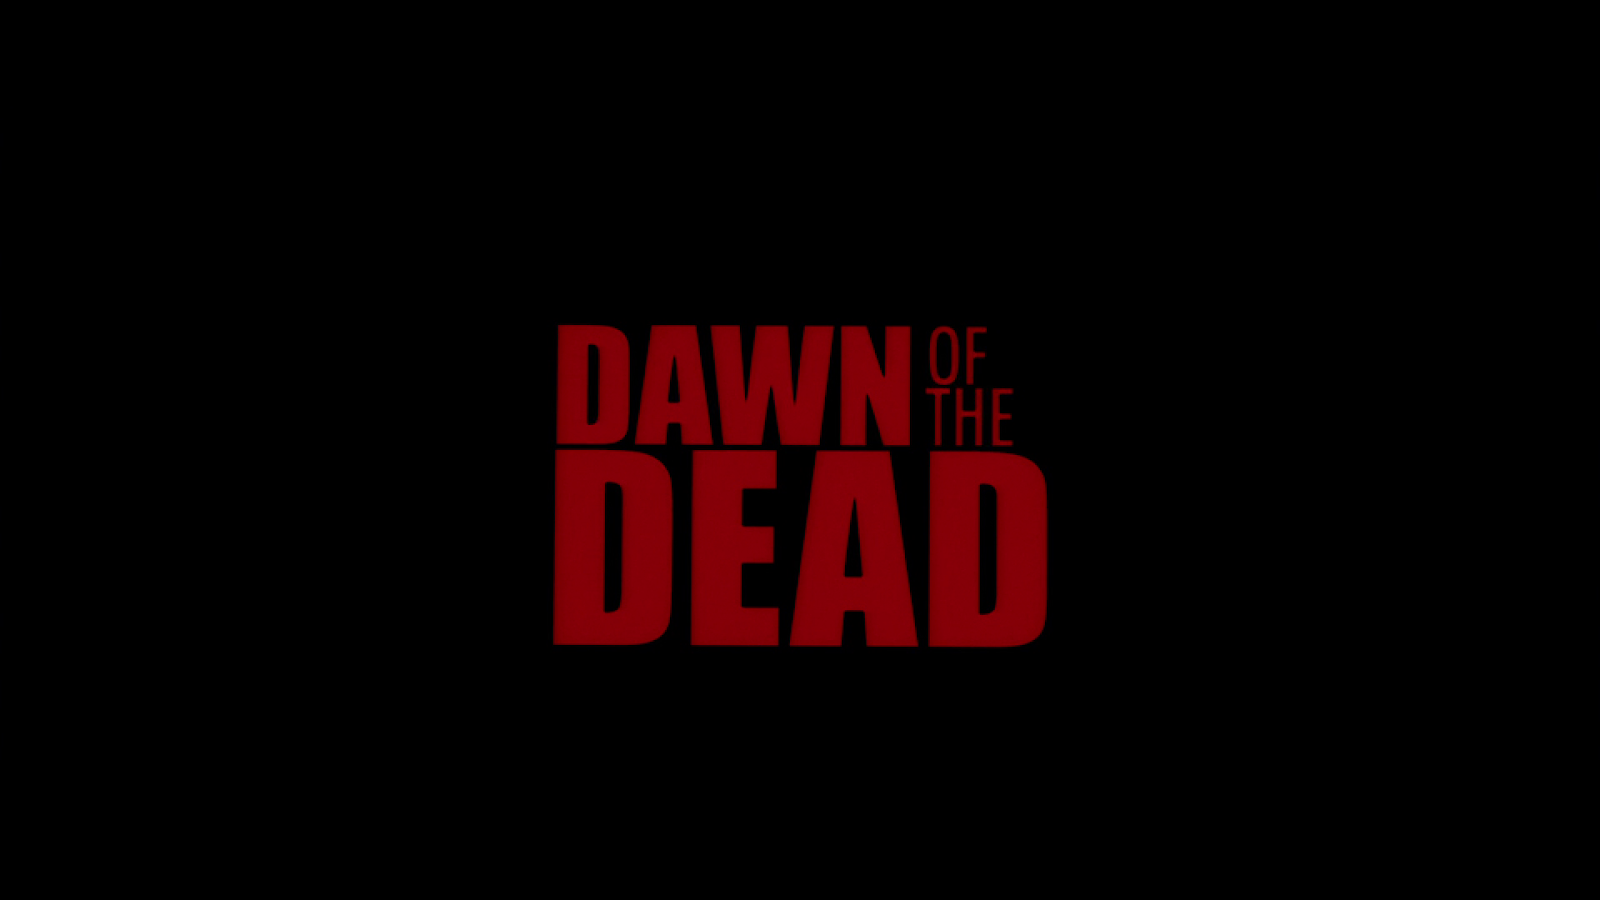 Dawn of the Dead main_1.jpg